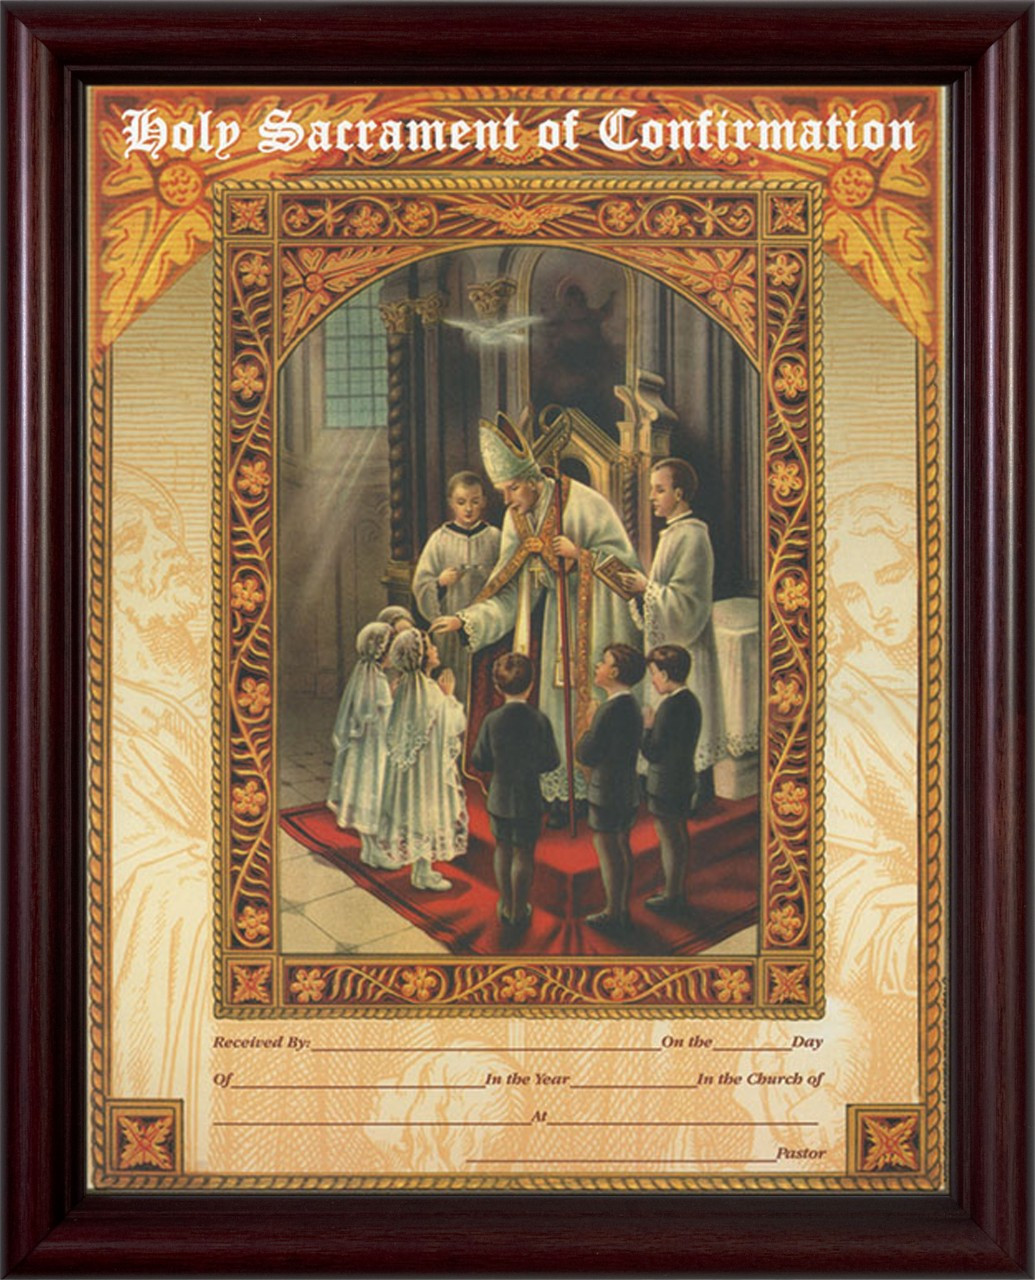 Holy sacrament of confirmation certificate cherry framed holy sacrament of confirmation certificate cherry framed 1betcityfo Images